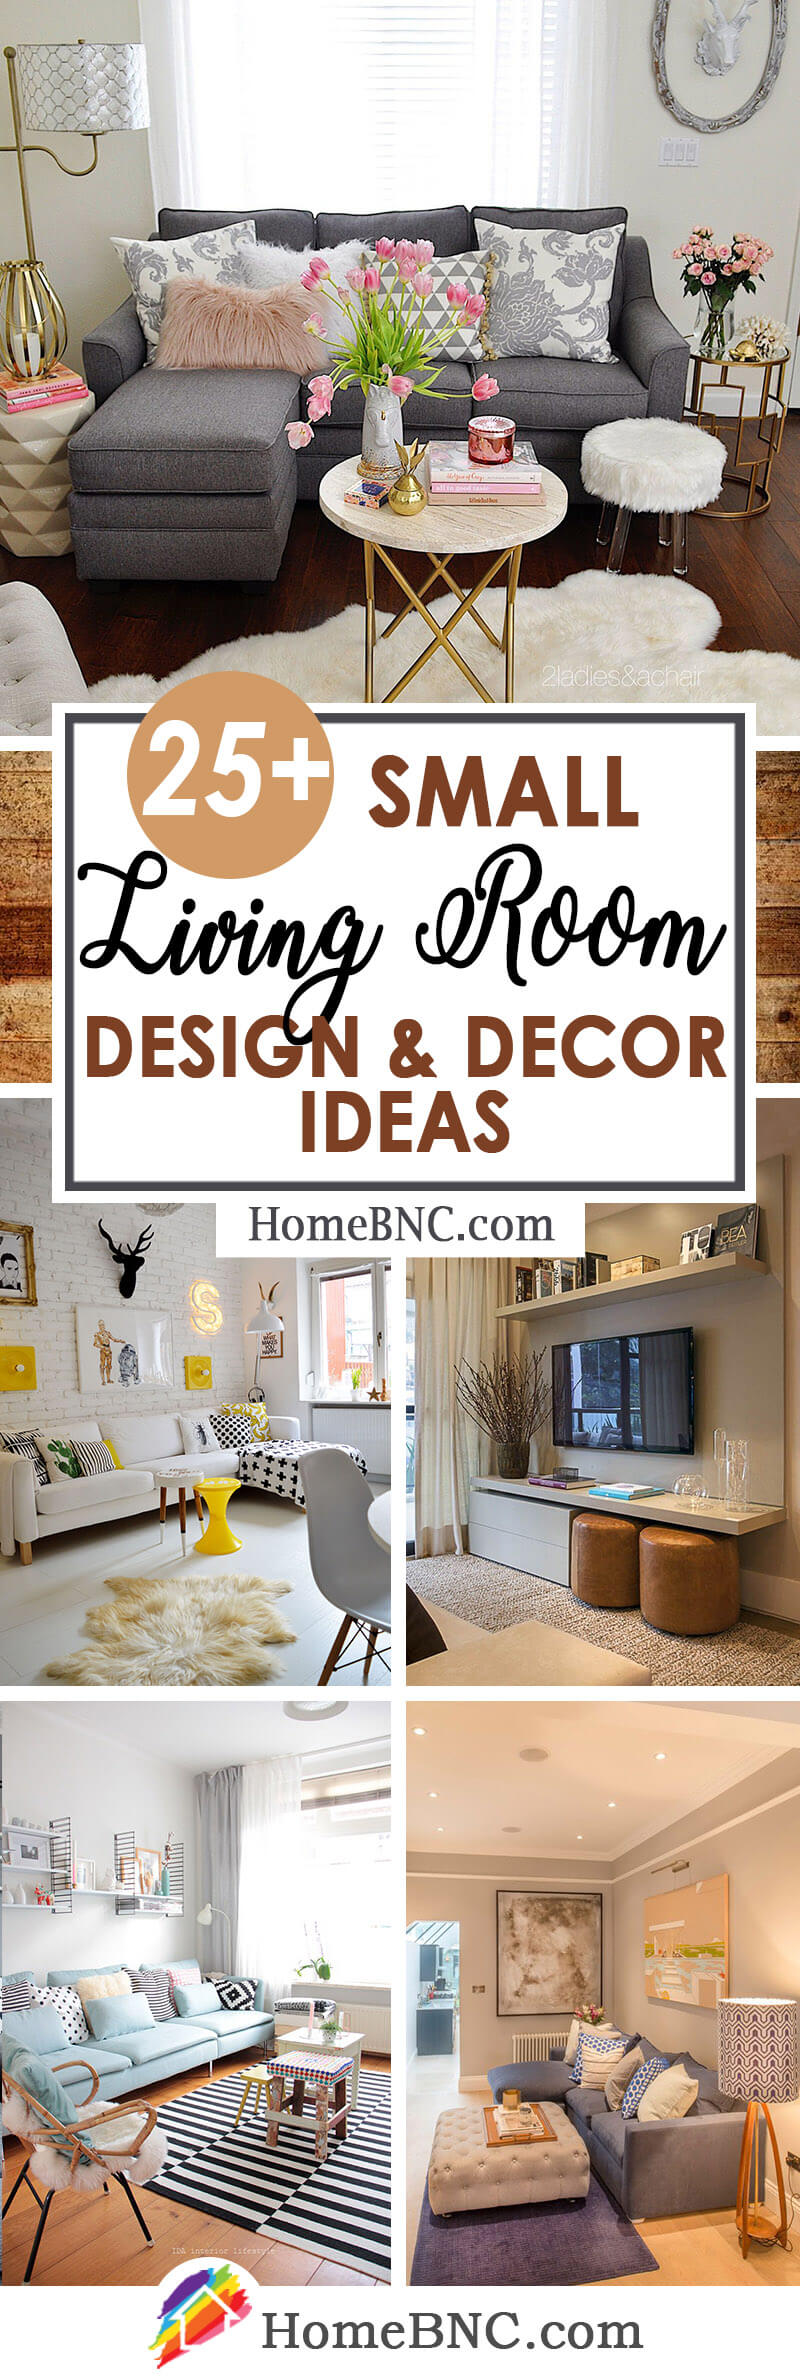 small living room design ideas 2018 best white paint color for 25 decor and 2019 novel that aren t cramped